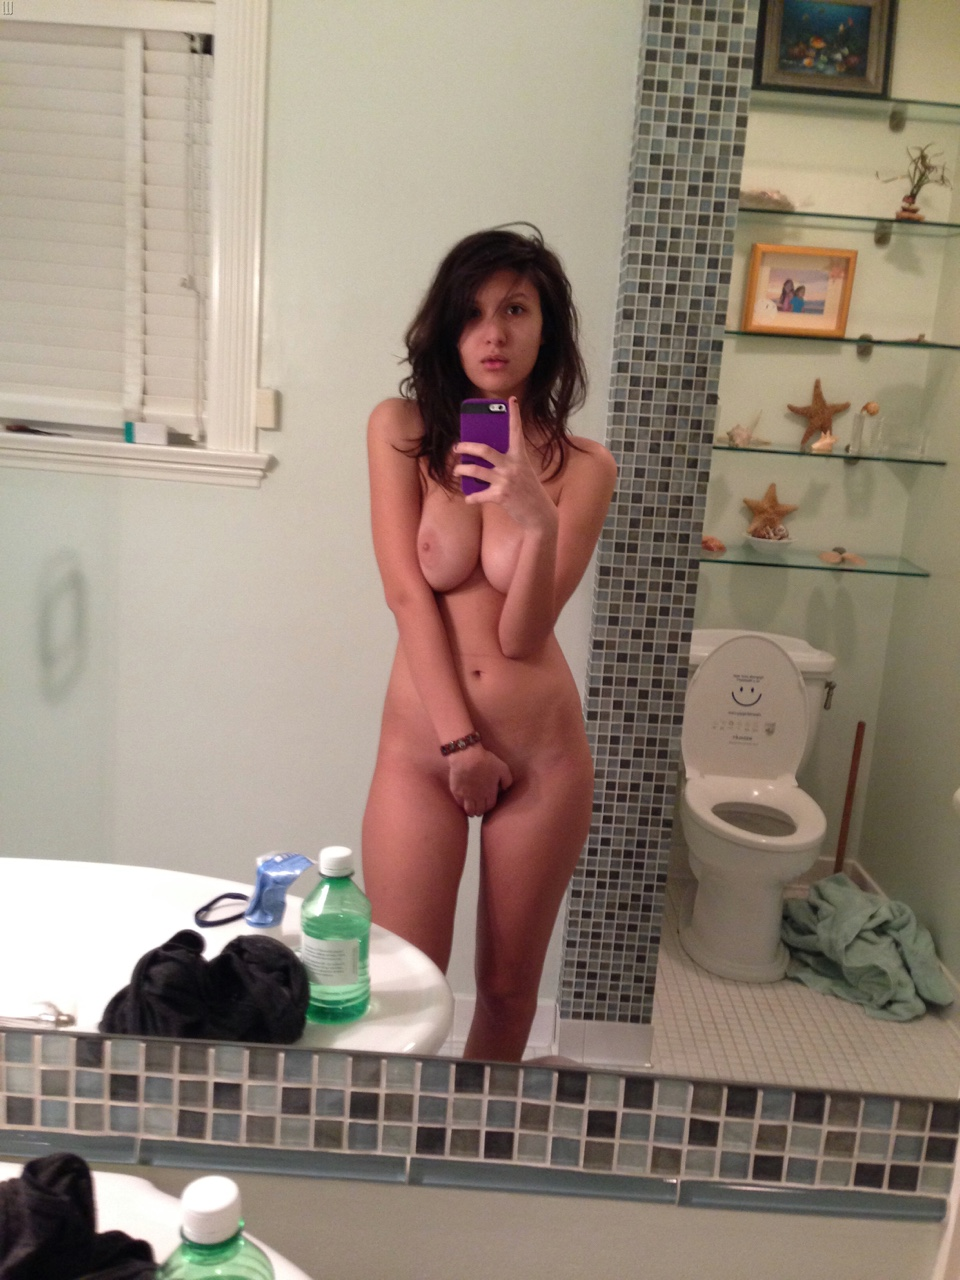 Average girl nude selfie